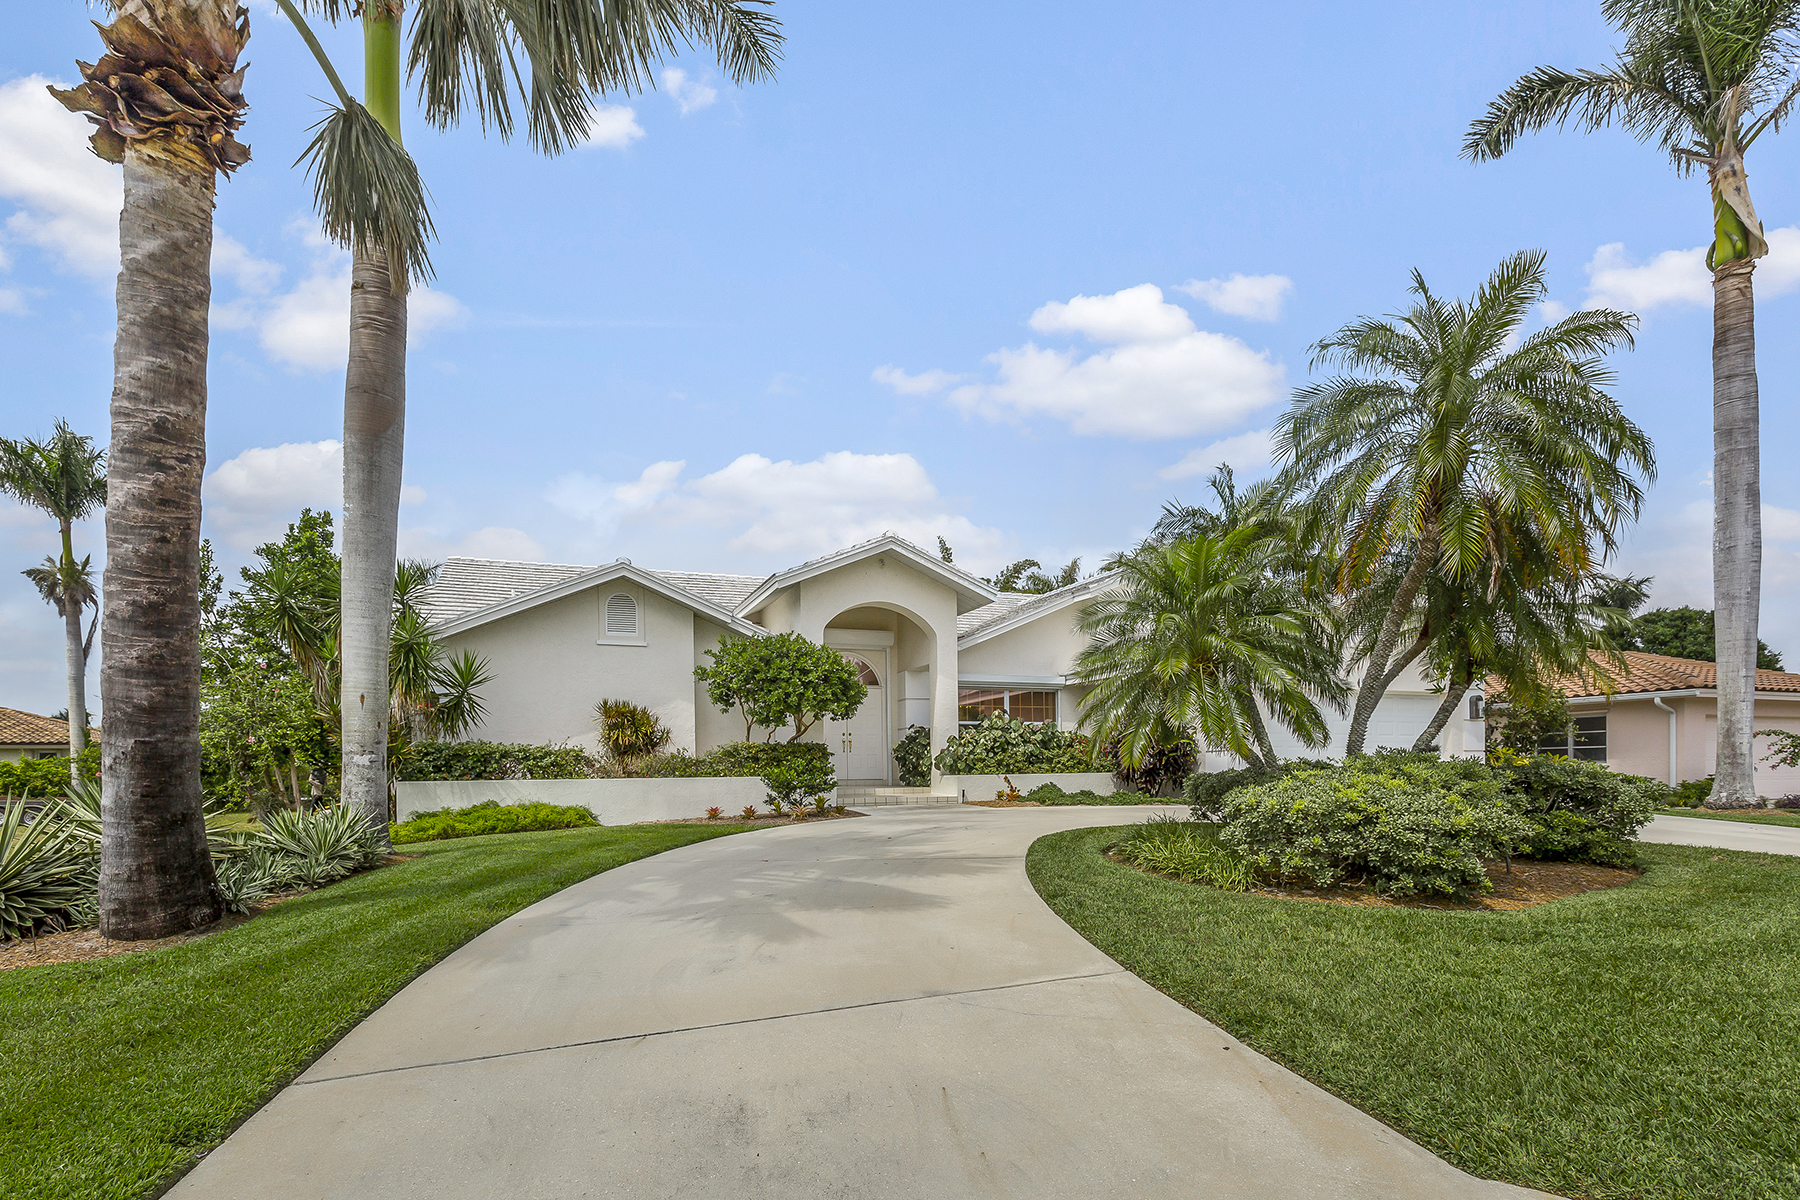 Single Family Home for Sale at 505 Pine Grove Ln , Naples, FL 34103 505 Pine Grove Ln, Naples, Florida 34103 United States